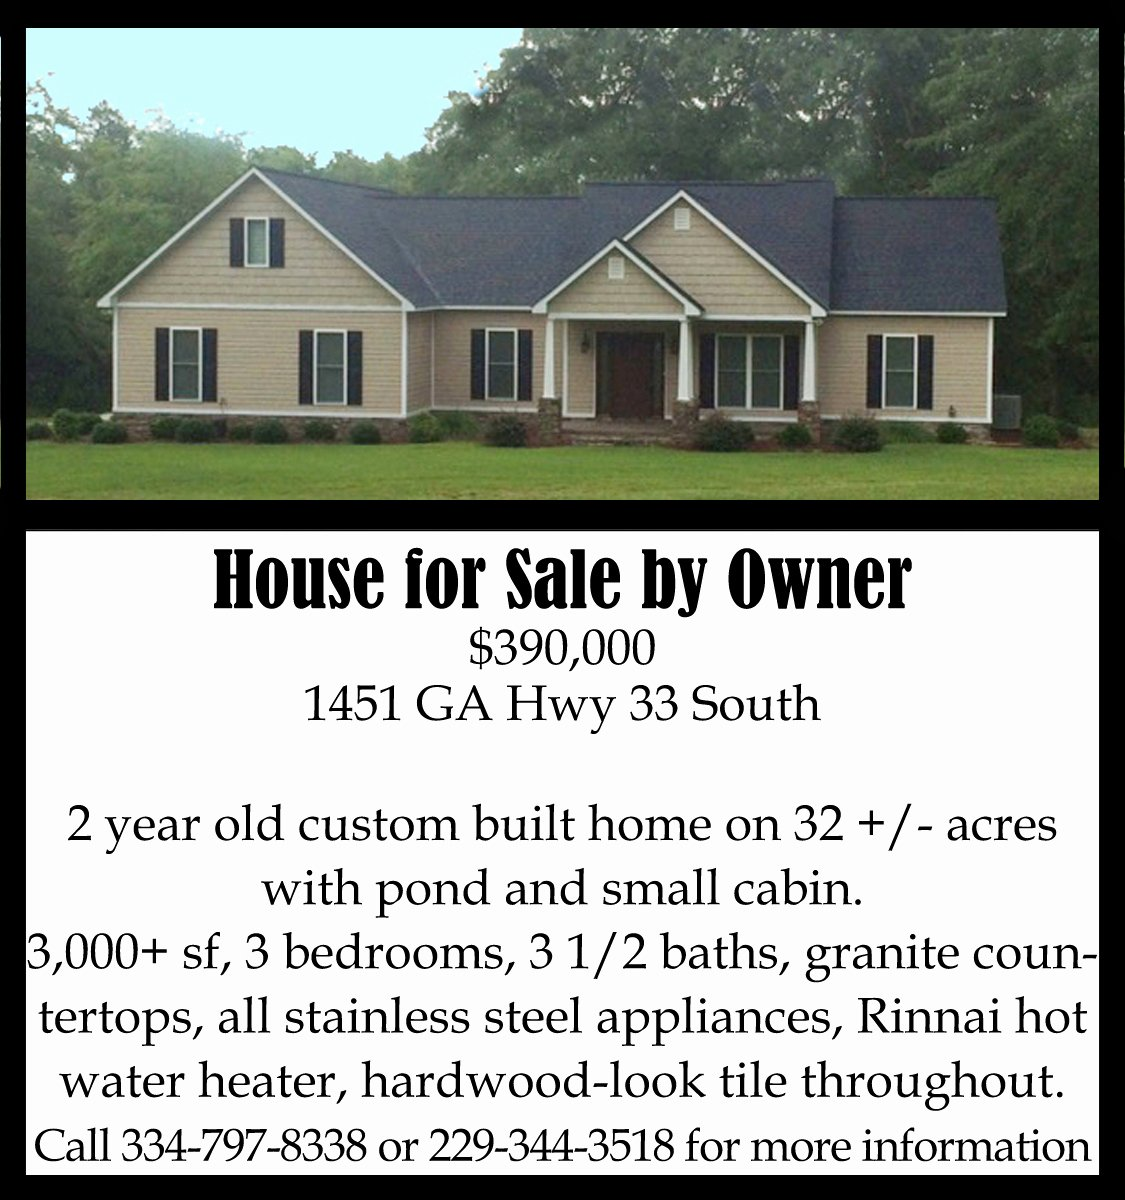 House for Sale Flyer Unique House for Sale